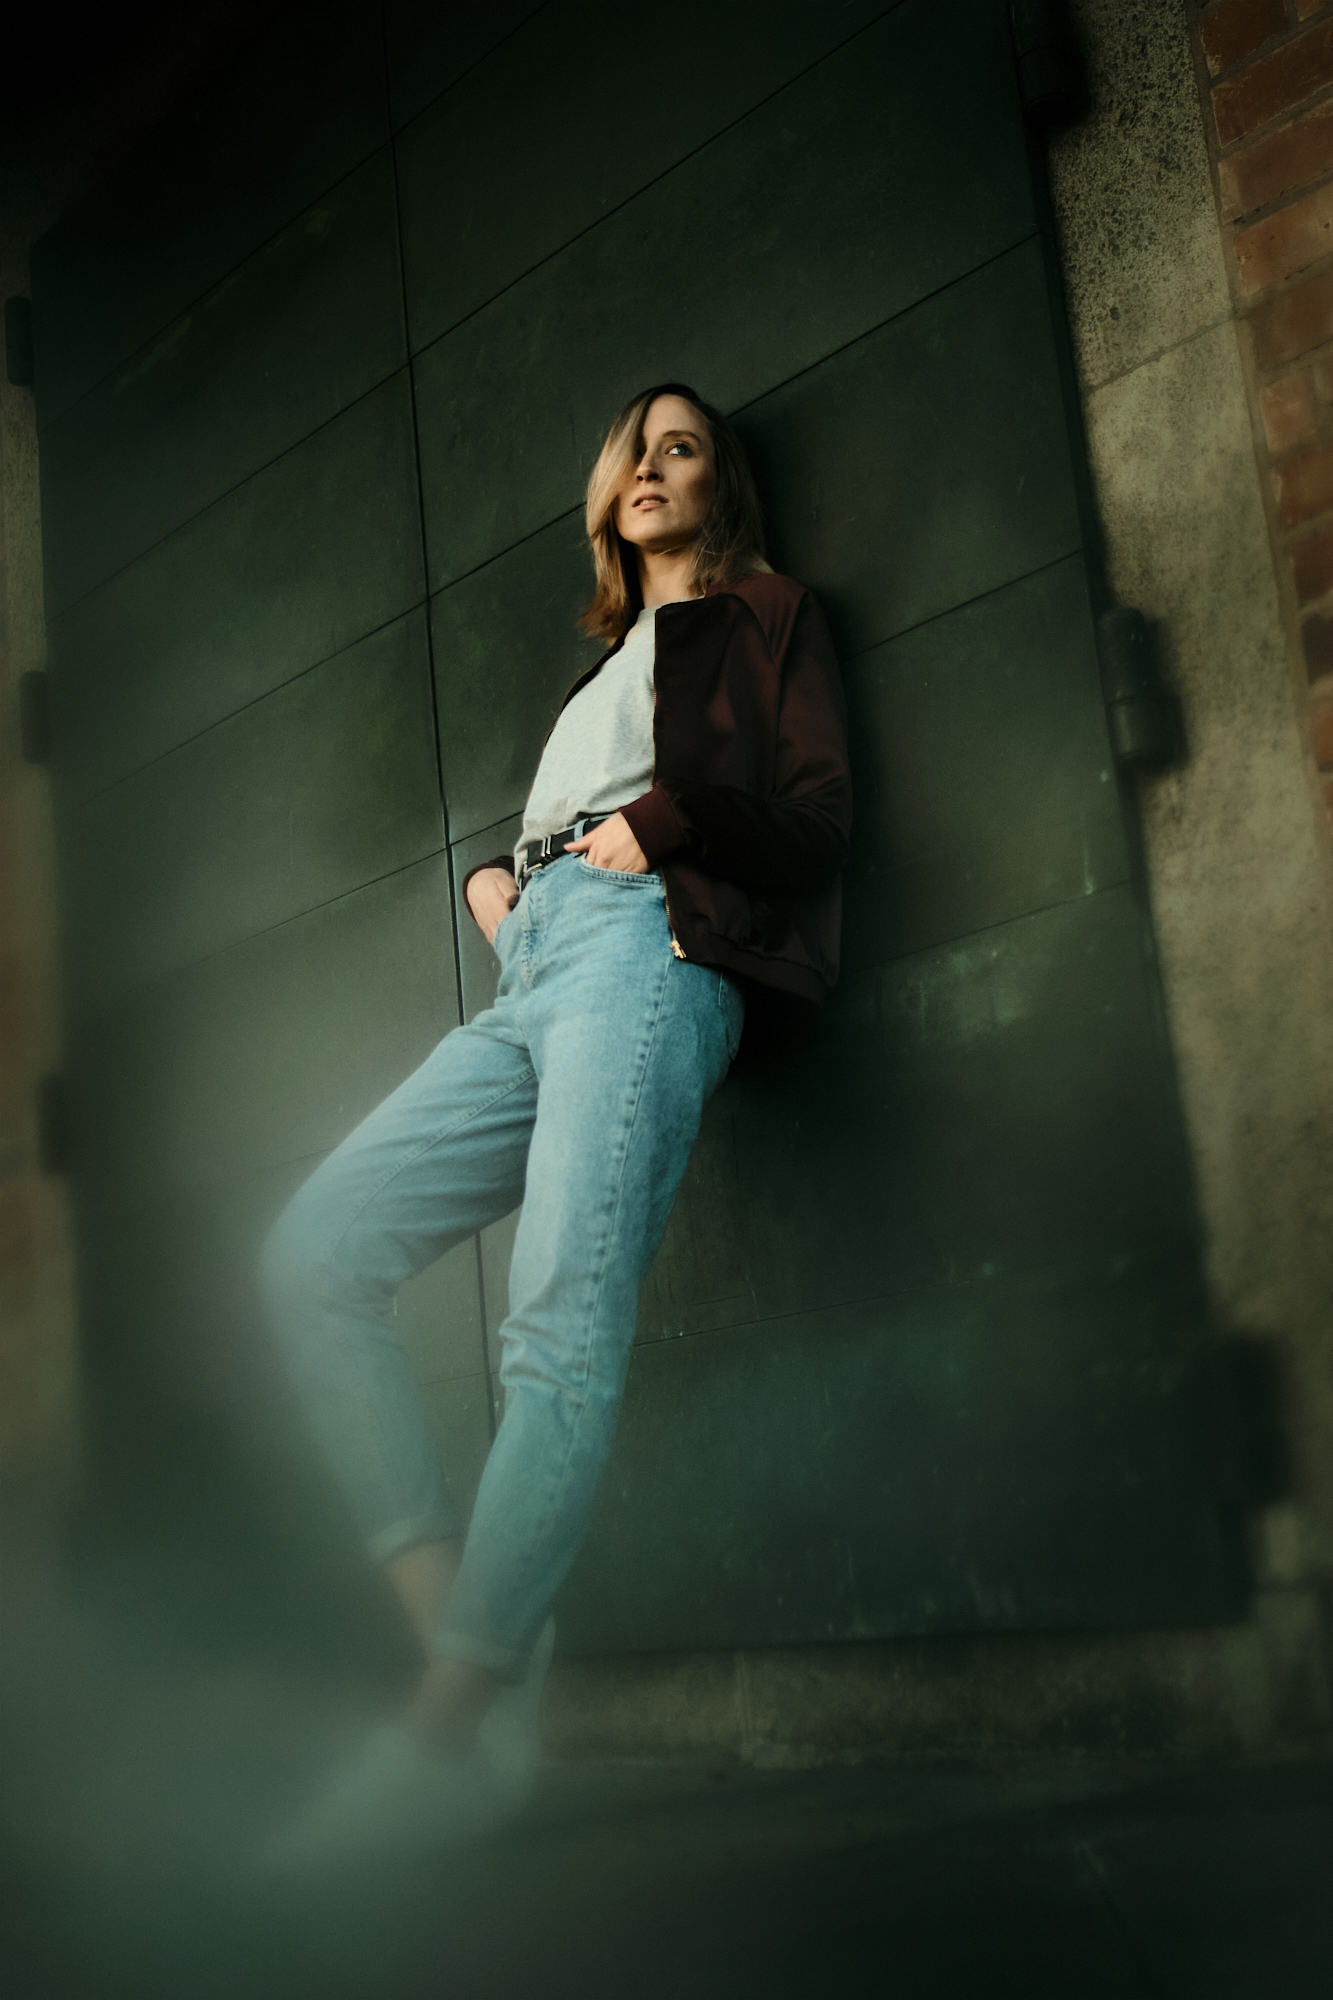 https://toh.photography/media/pages/shop/streetportraits-shooting-pack/4285387514-1625327124/dscf7041.jpg